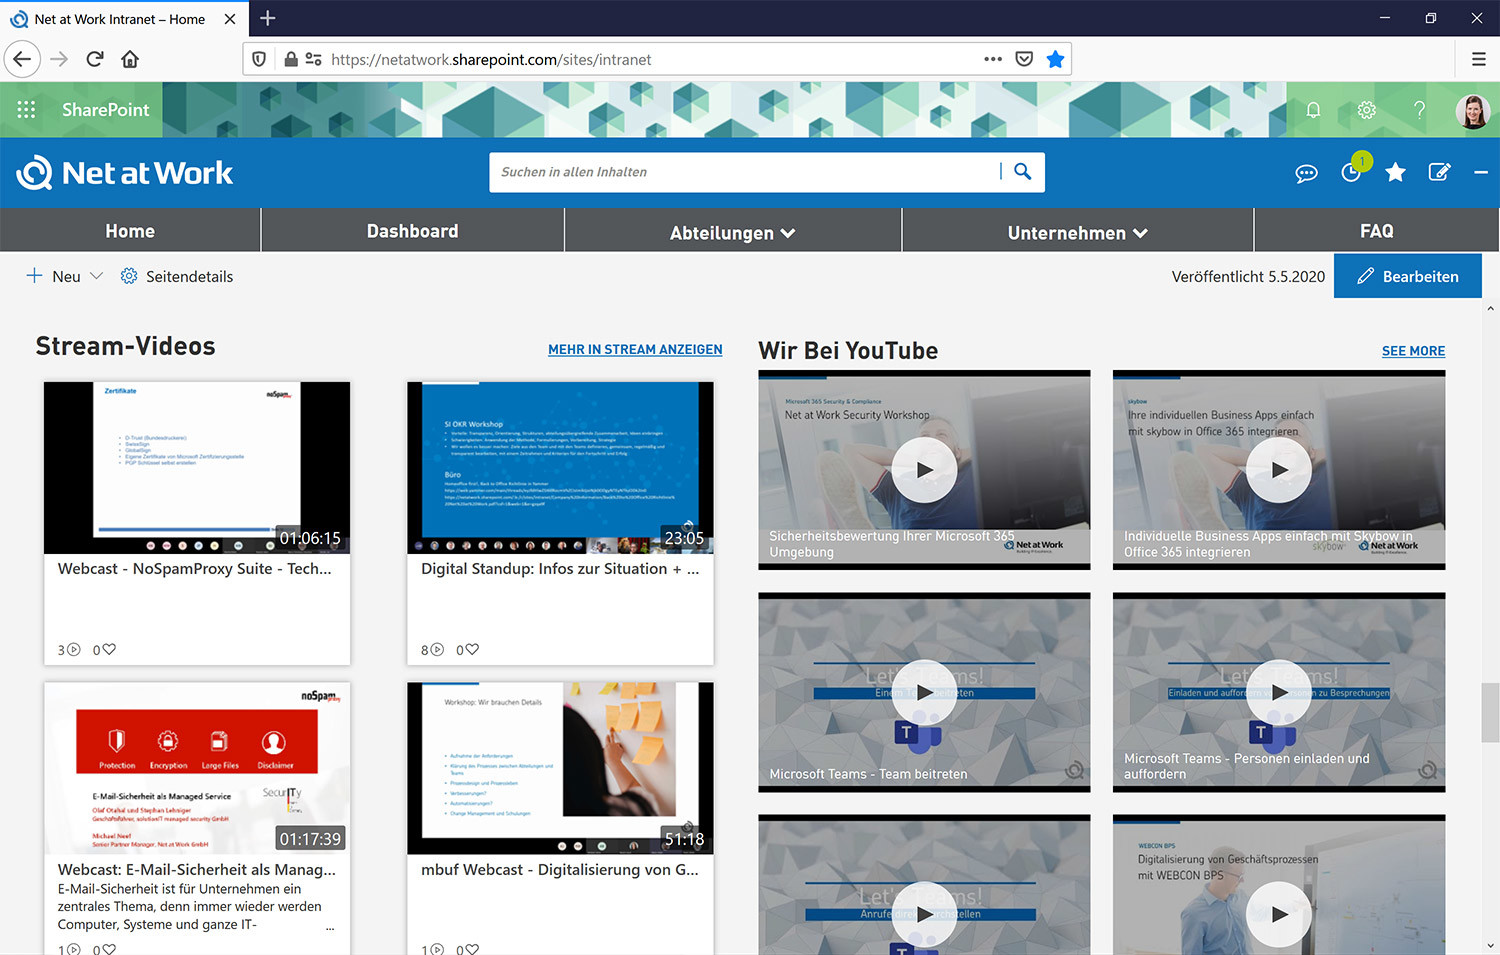 Microsoft Stream und YouTube-Videos im Social Intranet